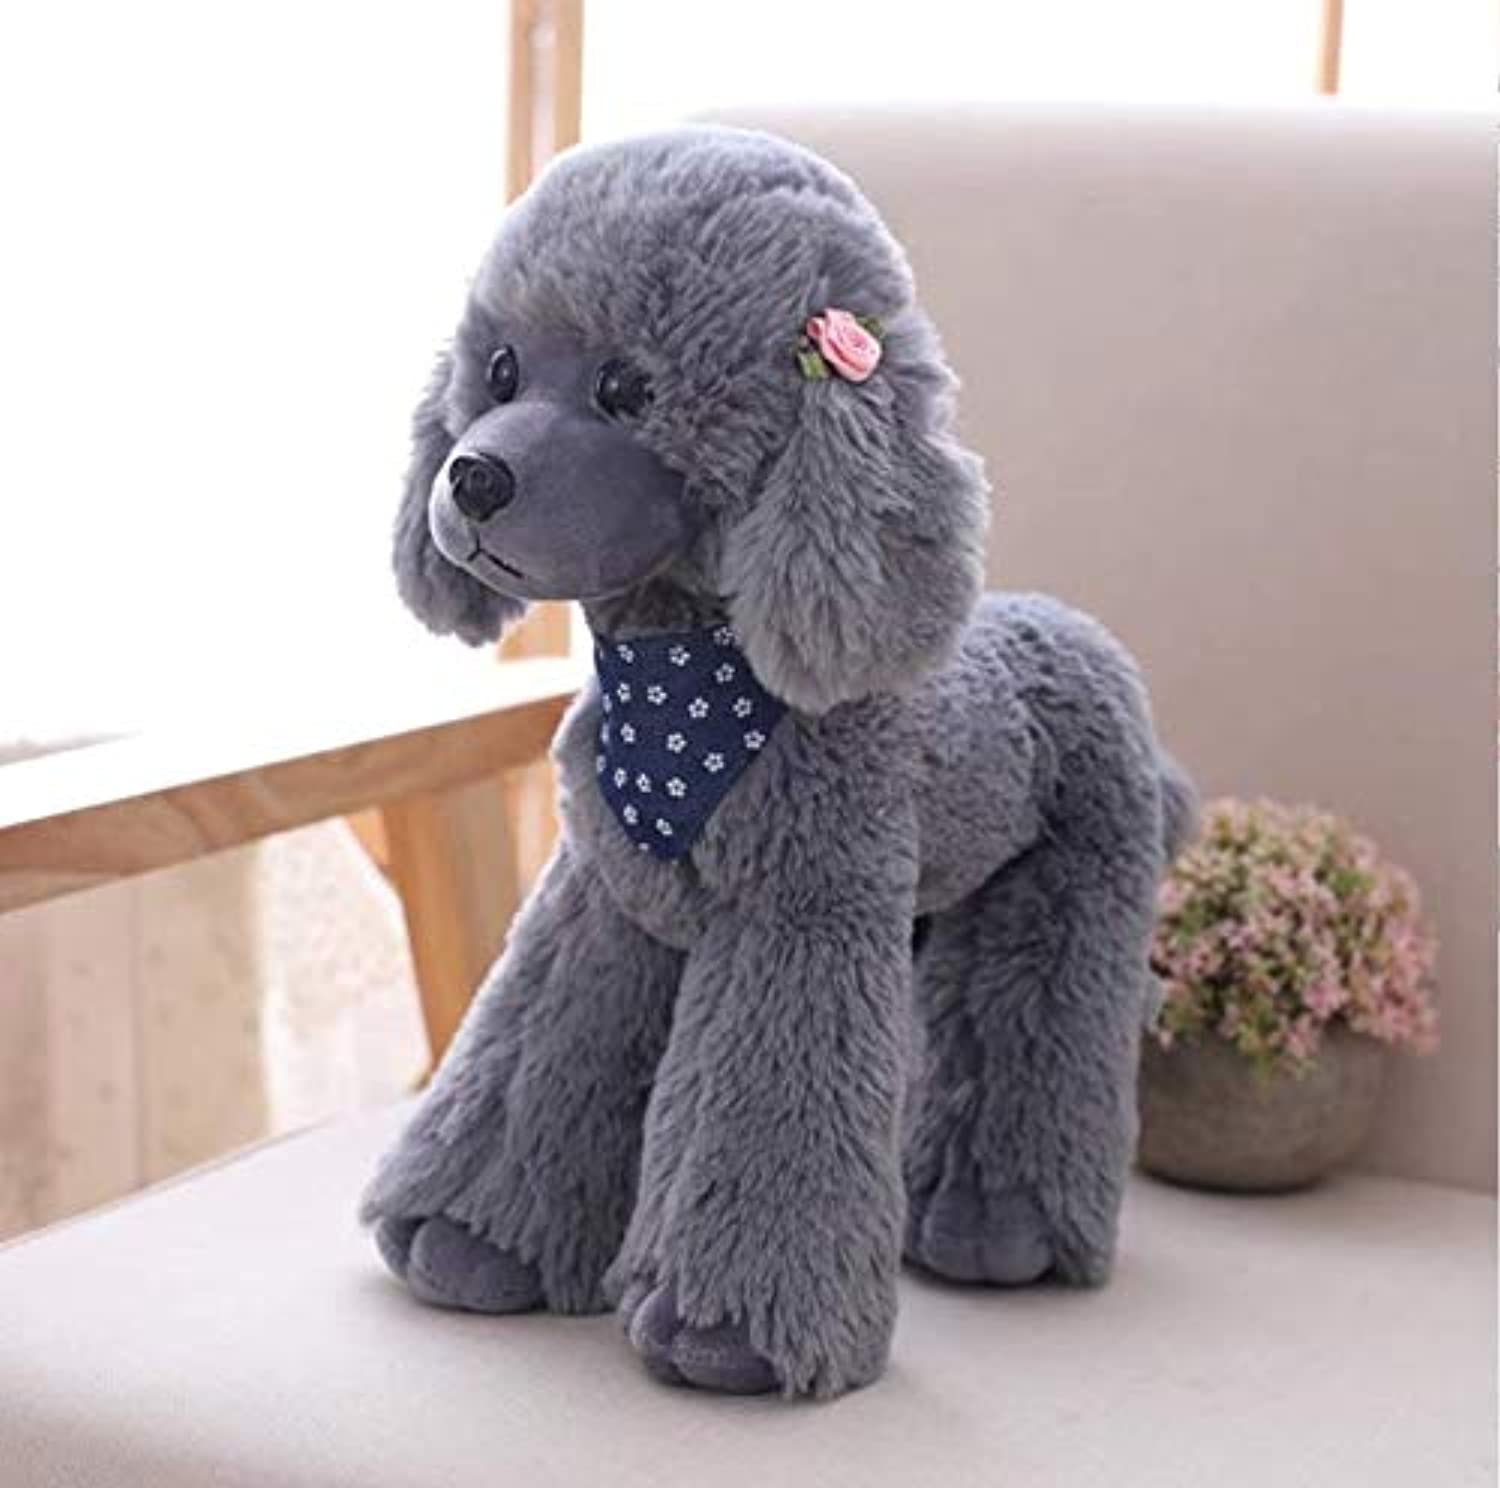 KOONNG 2540cm Simulation Teddy dog doll, poodle home furnishing plush toys for girls birthday gifts,C,25CM